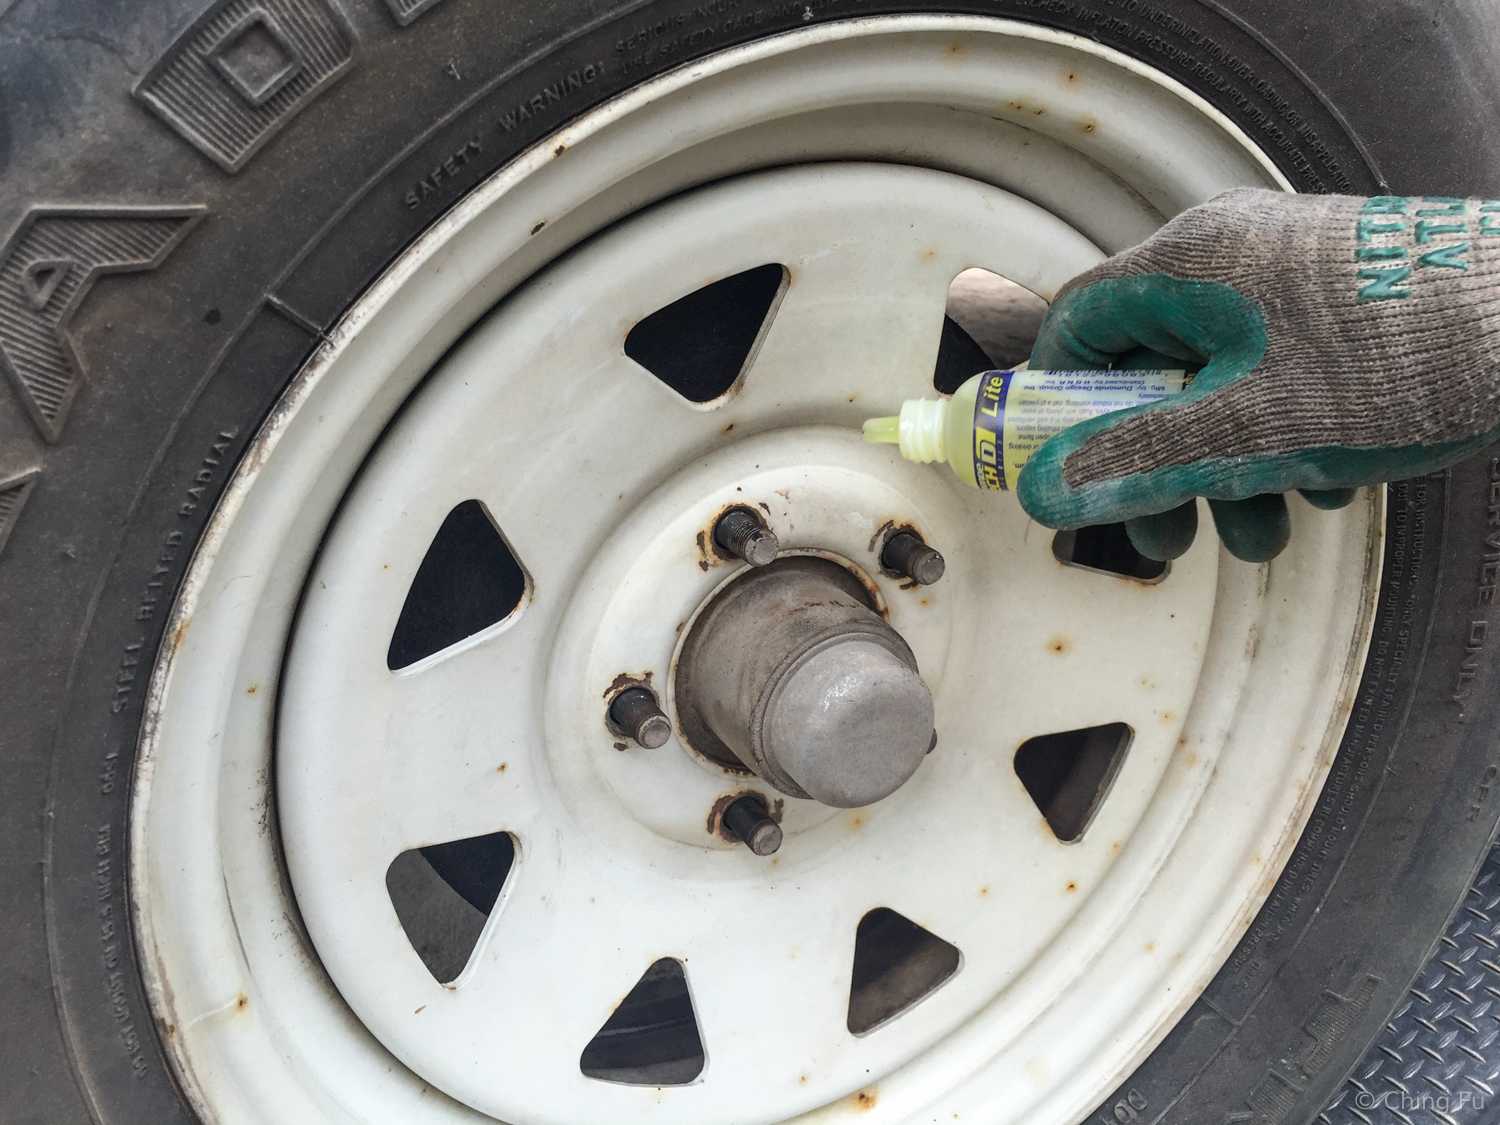 Step #10: Lube the studs before placing the lug nuts back on.